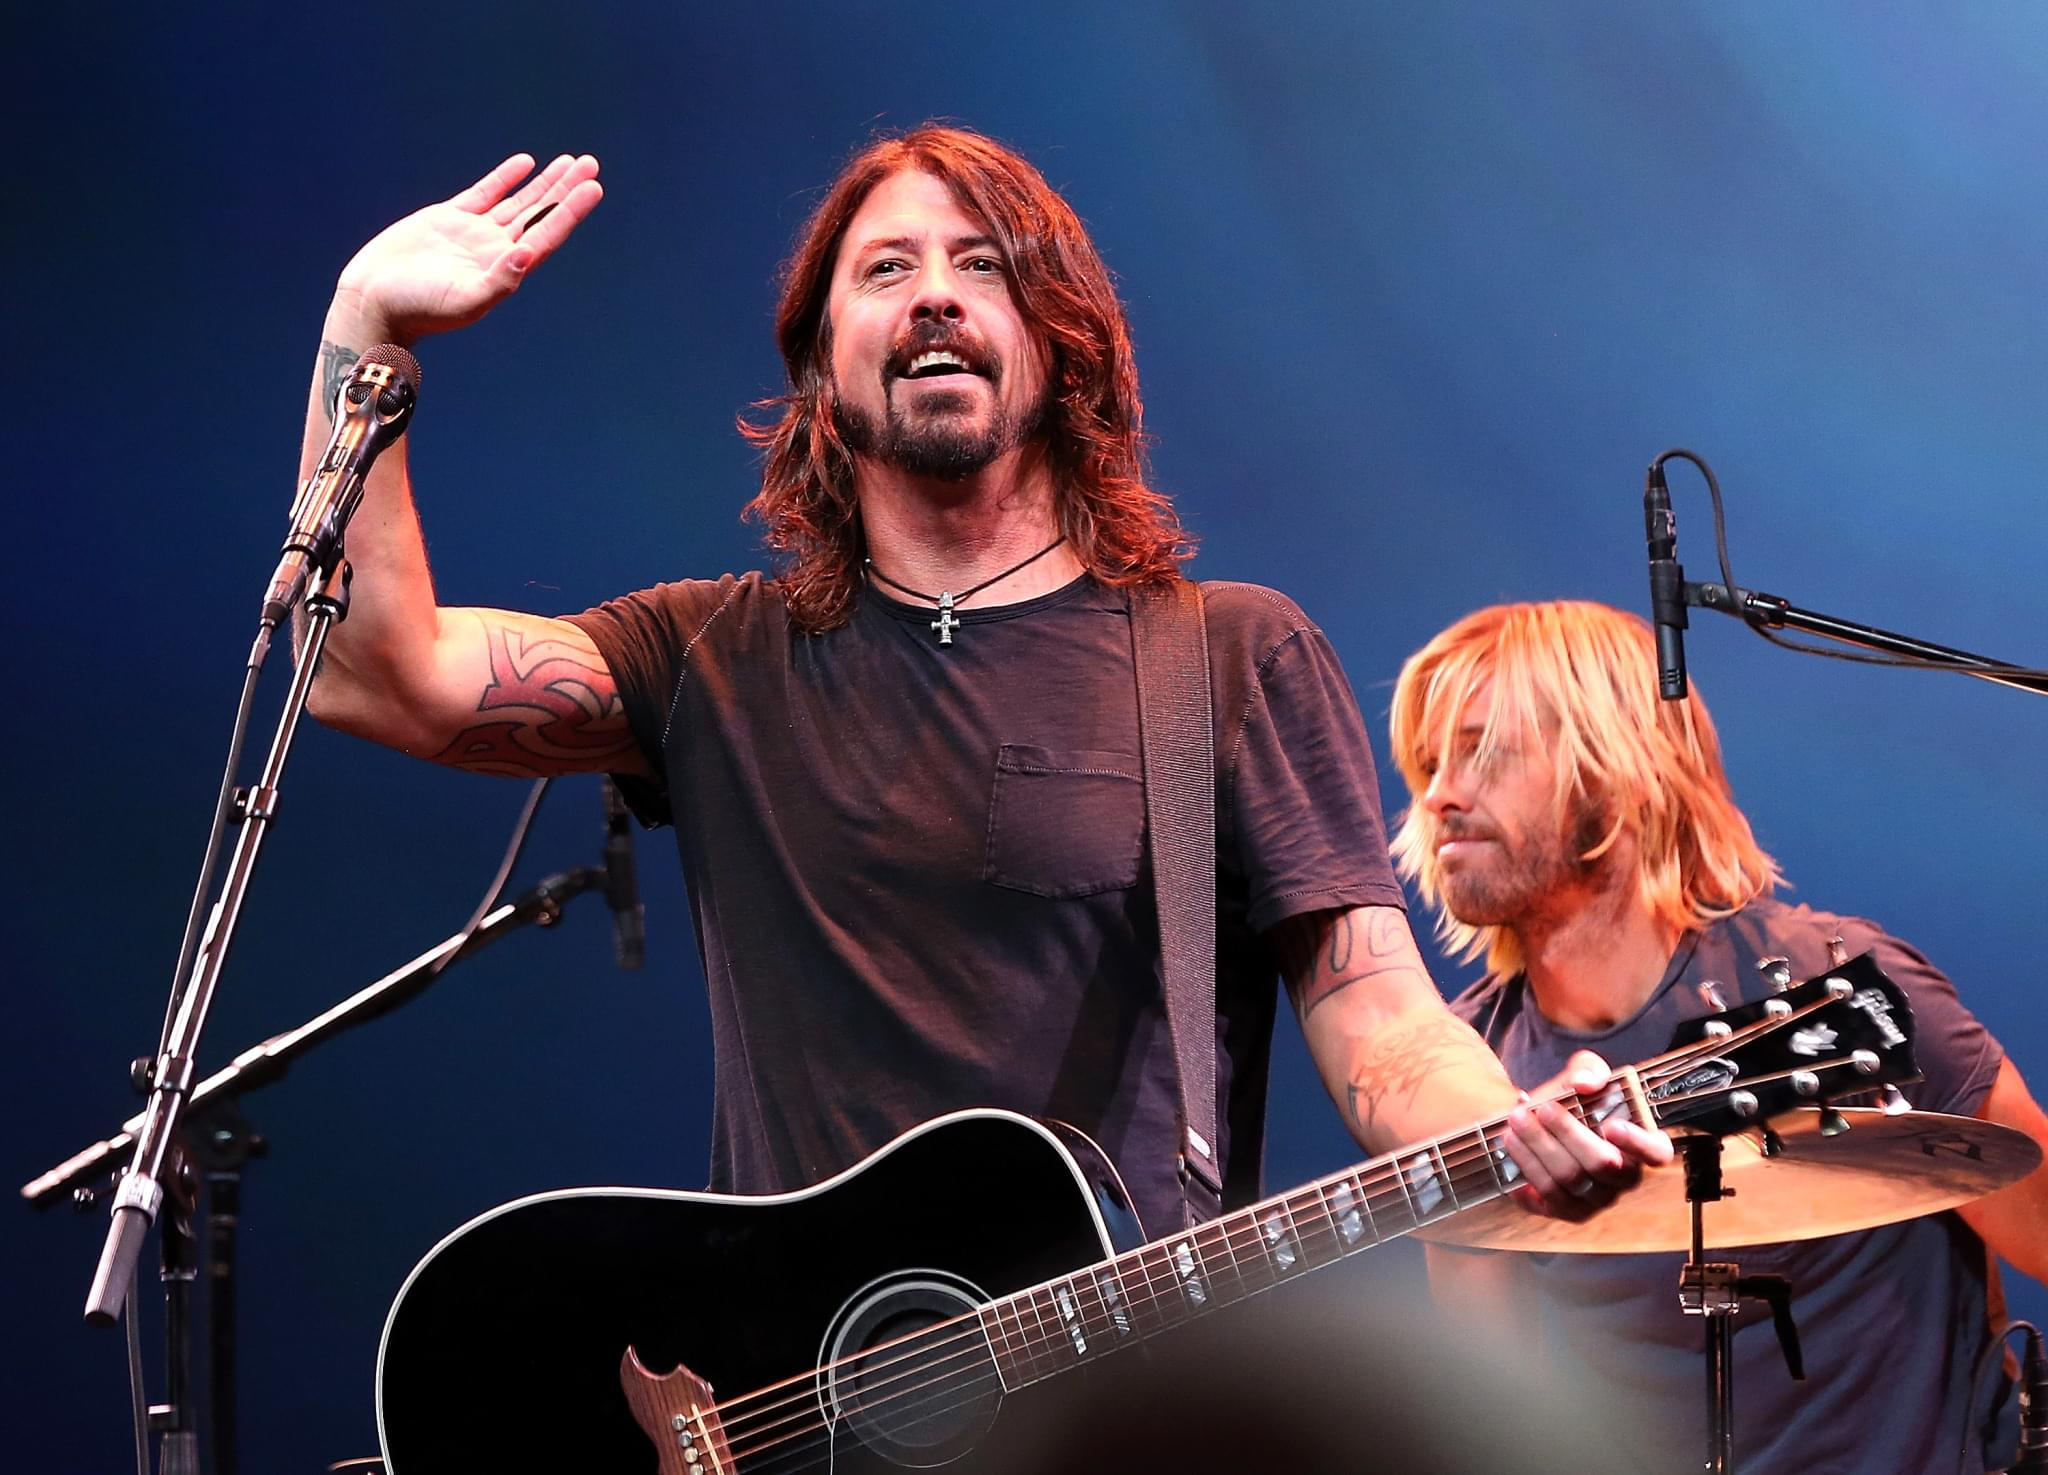 """OFFICIAL TRAILER: Dave Grohl Hits The Road In New """"What Drives Us"""" Documentary"""